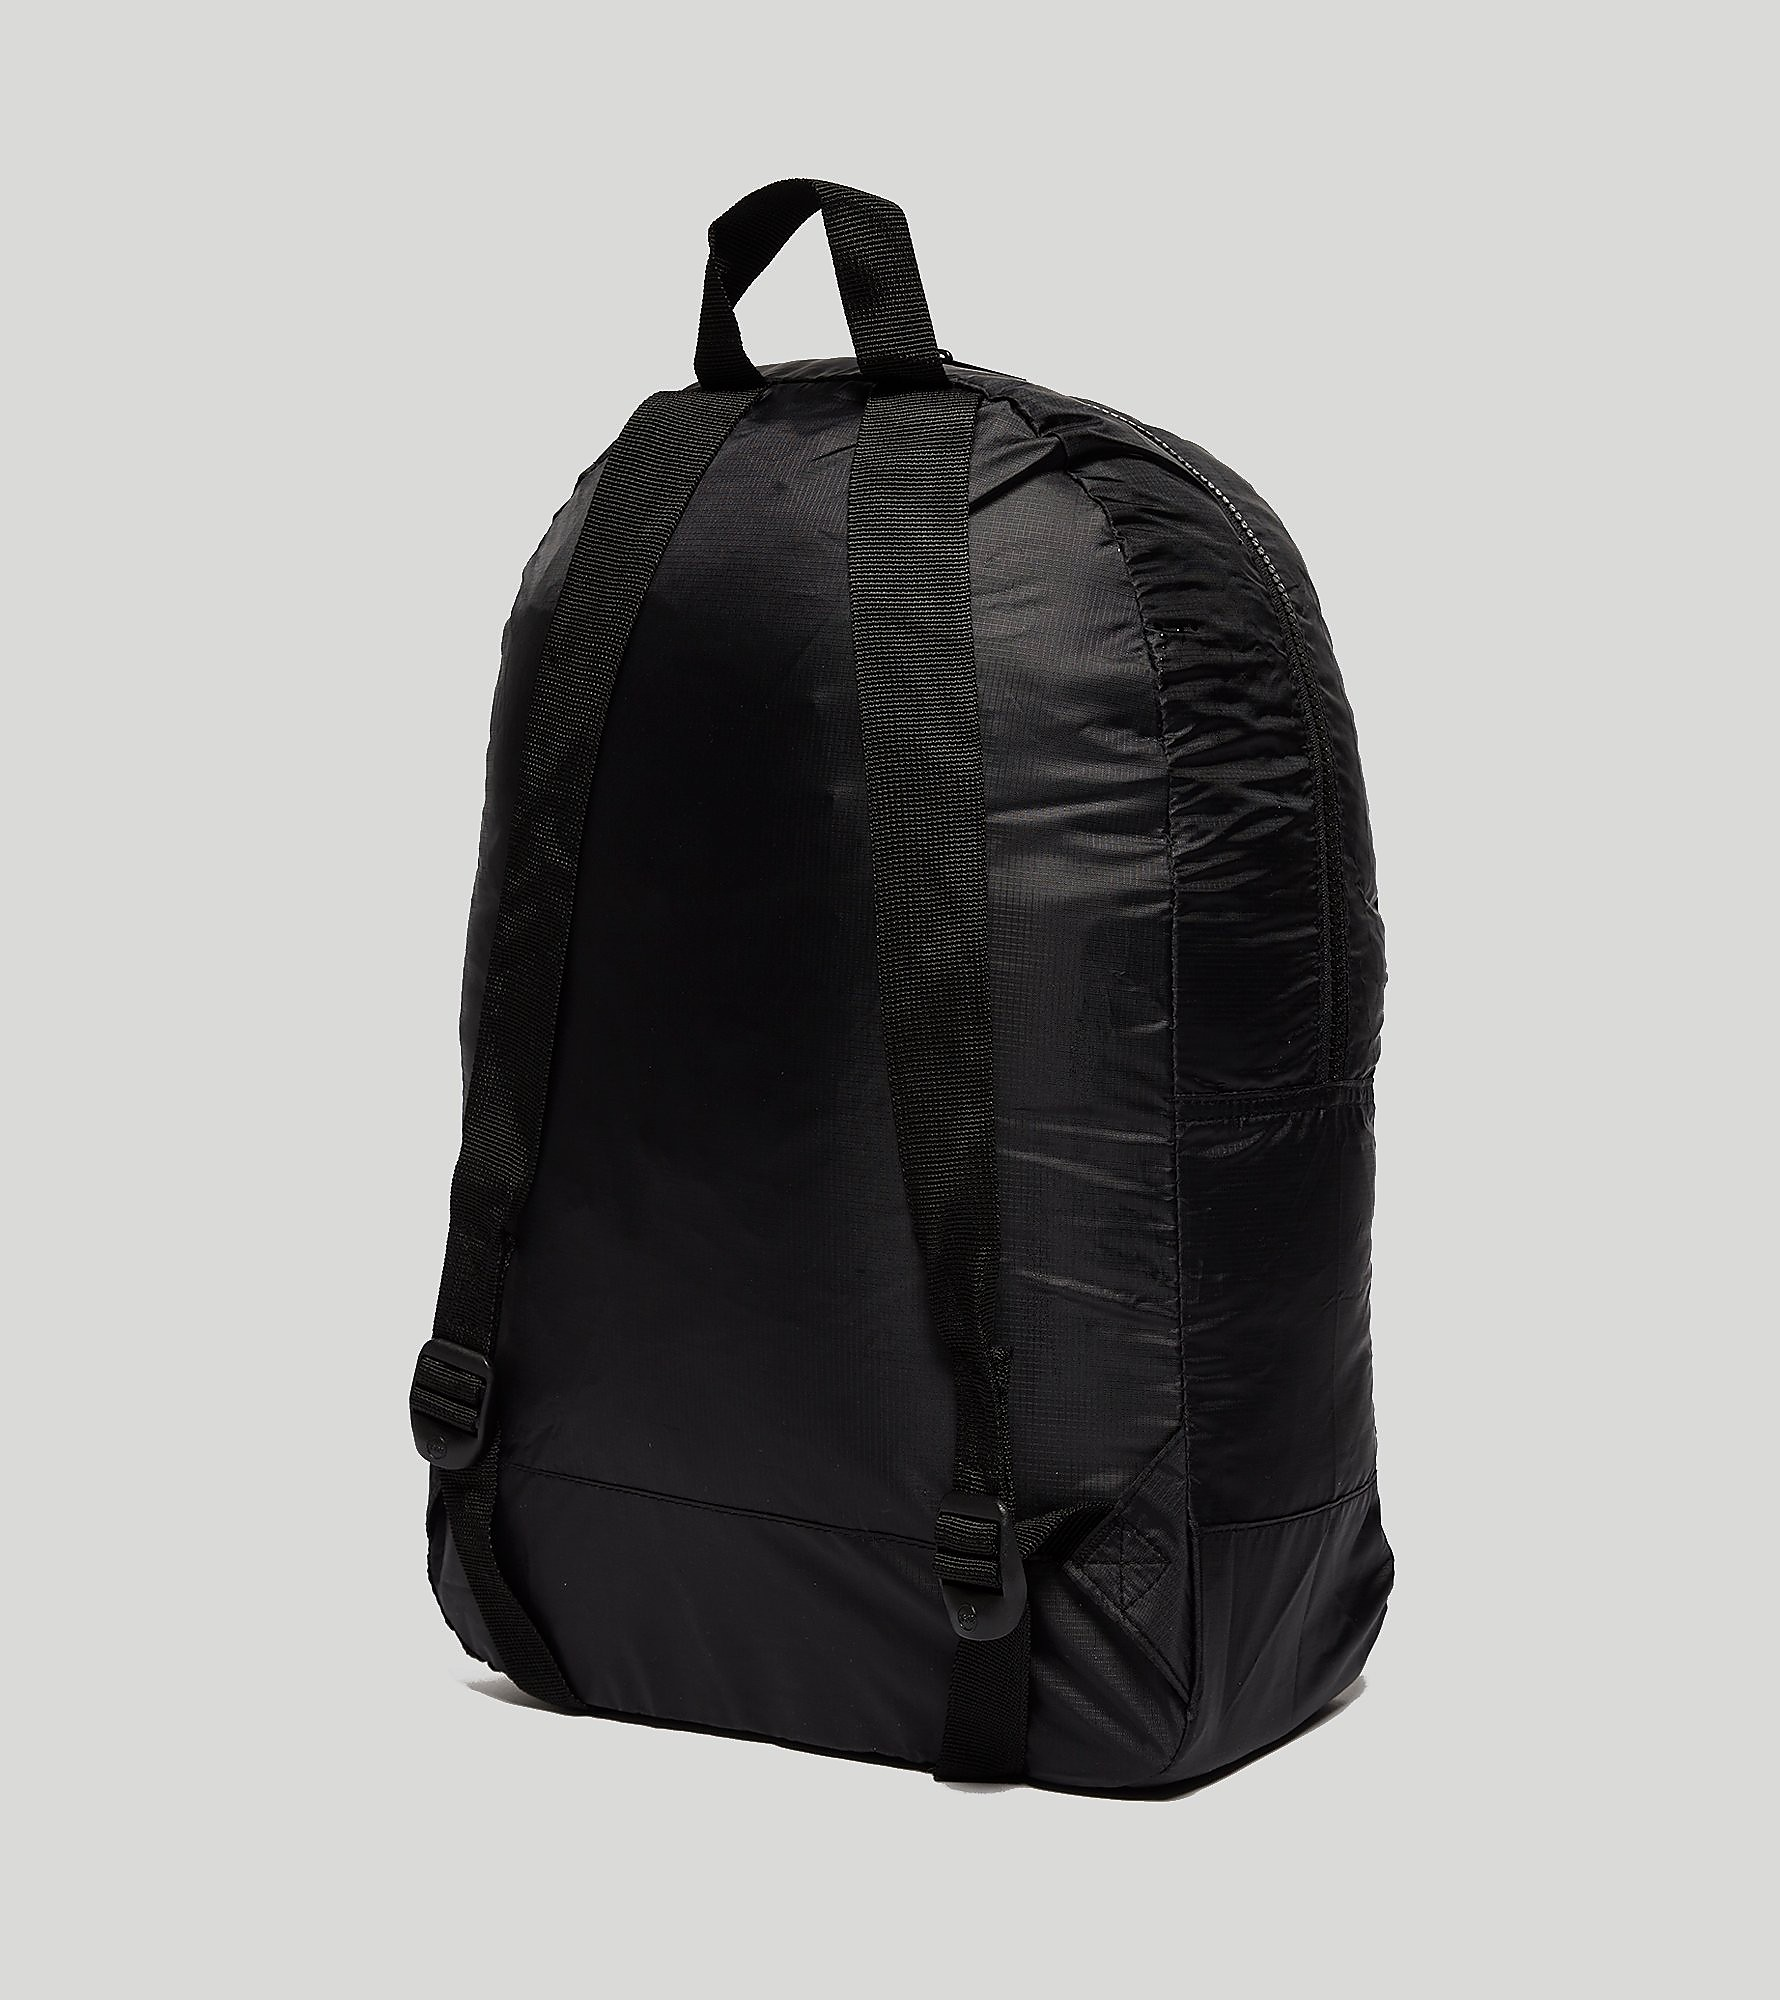 Herschel Supply Co Packable Ripstop Backpack